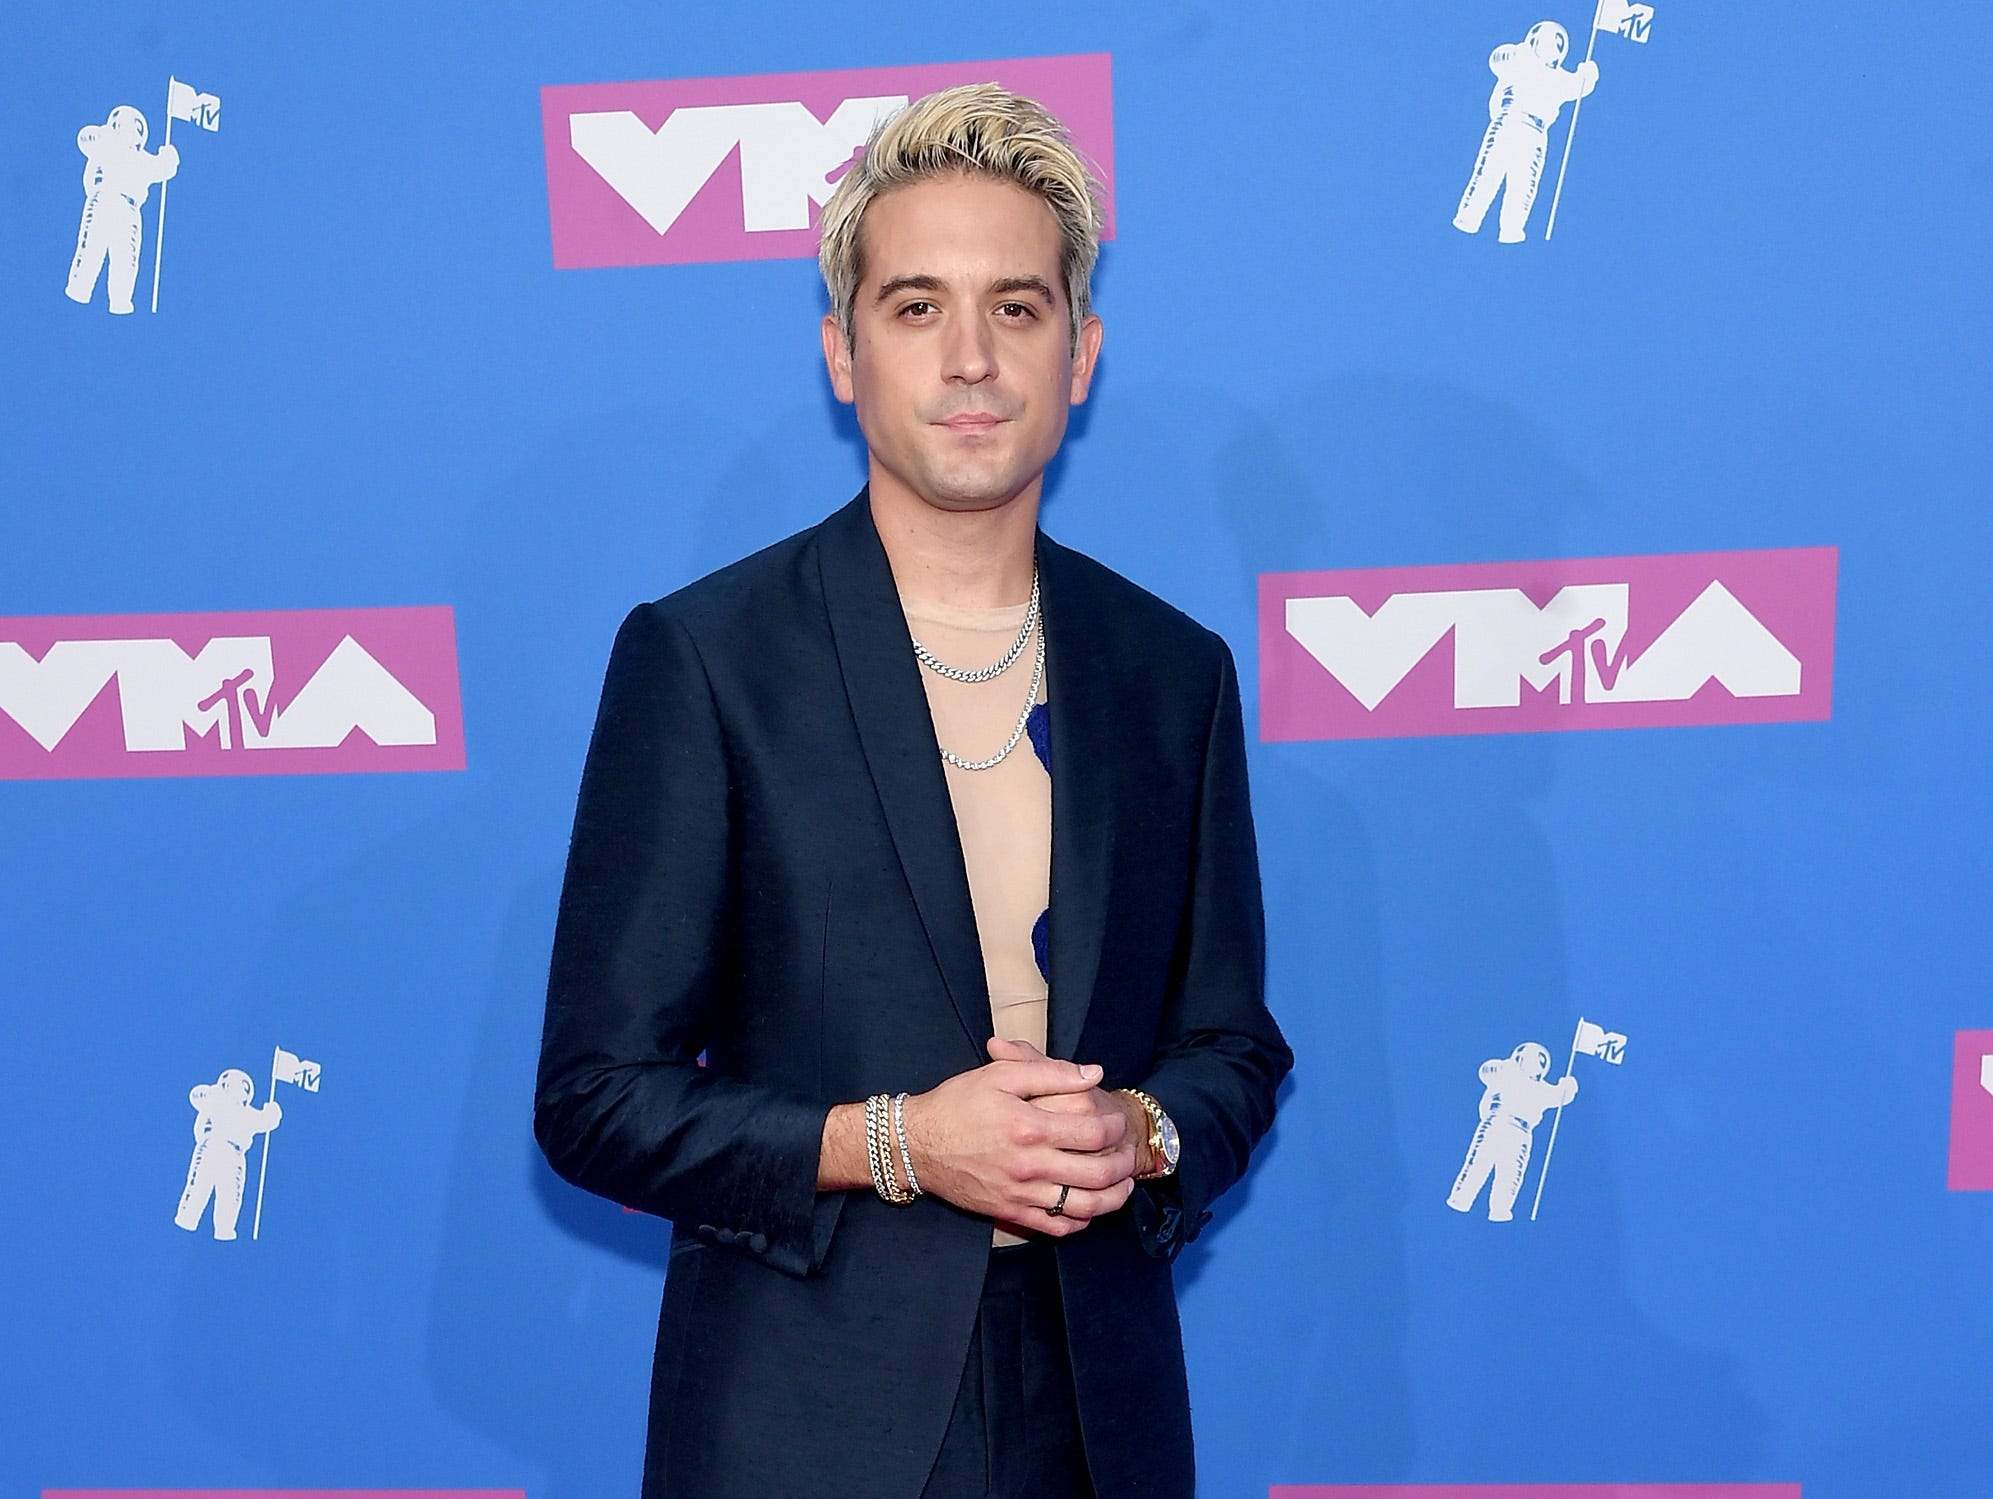 NEW YORK, NY - AUGUST 20:  G-Eazy attends the 2018 MTV Video Music Awards at Radio City Music Hall on August 20, 2018 in New York City.  (Photo by Jamie McCarthy/Getty Images) ORG XMIT: 775210277 ORIG FILE ID: 1020265584